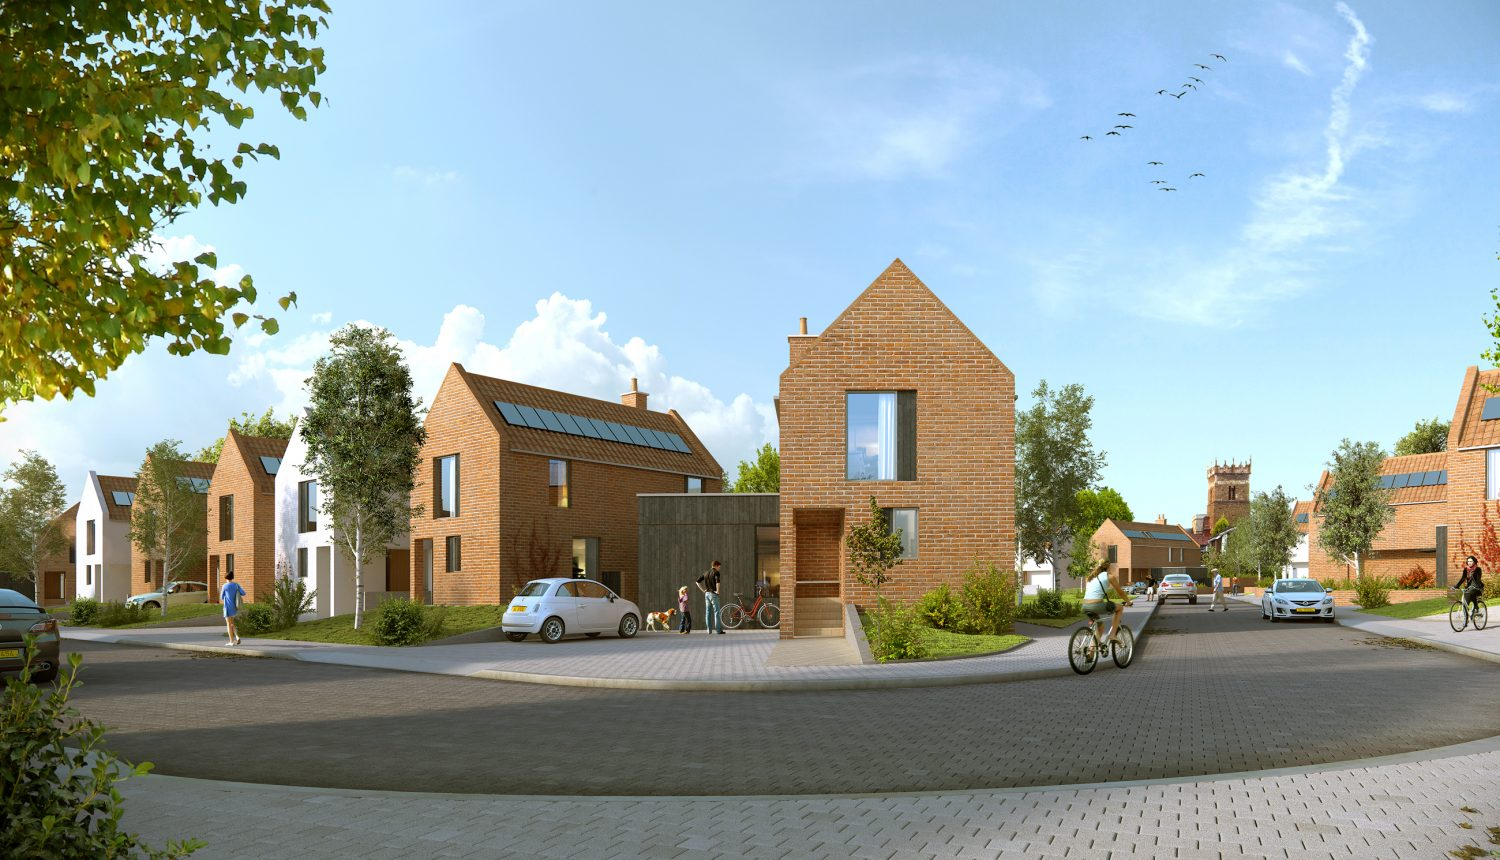 Sustainable Housing Development, Old Clee